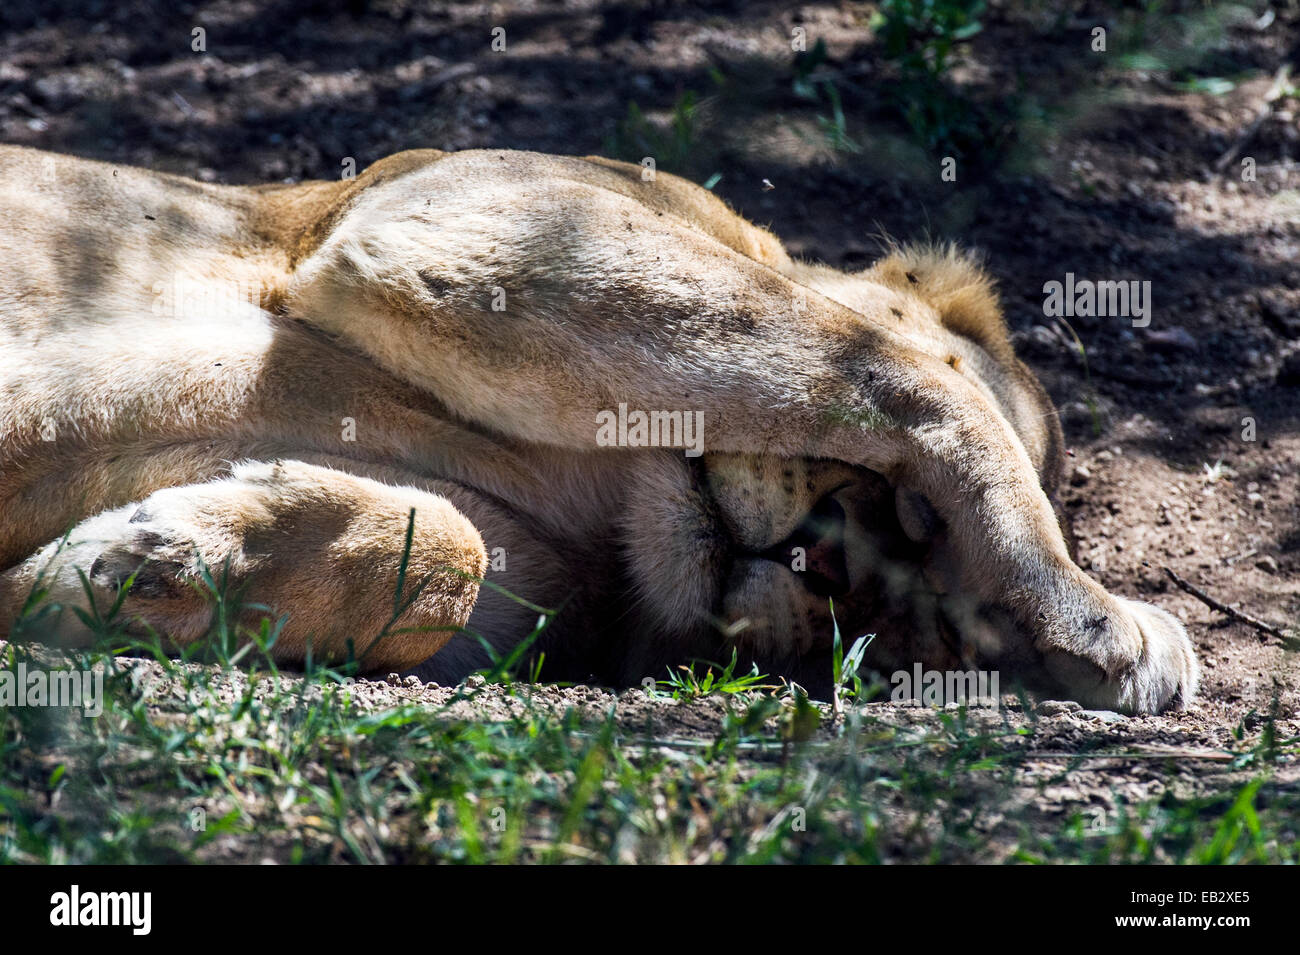 An African lion shelters its face from pest flies and the bright sun whilst it sleeps. - Stock Image